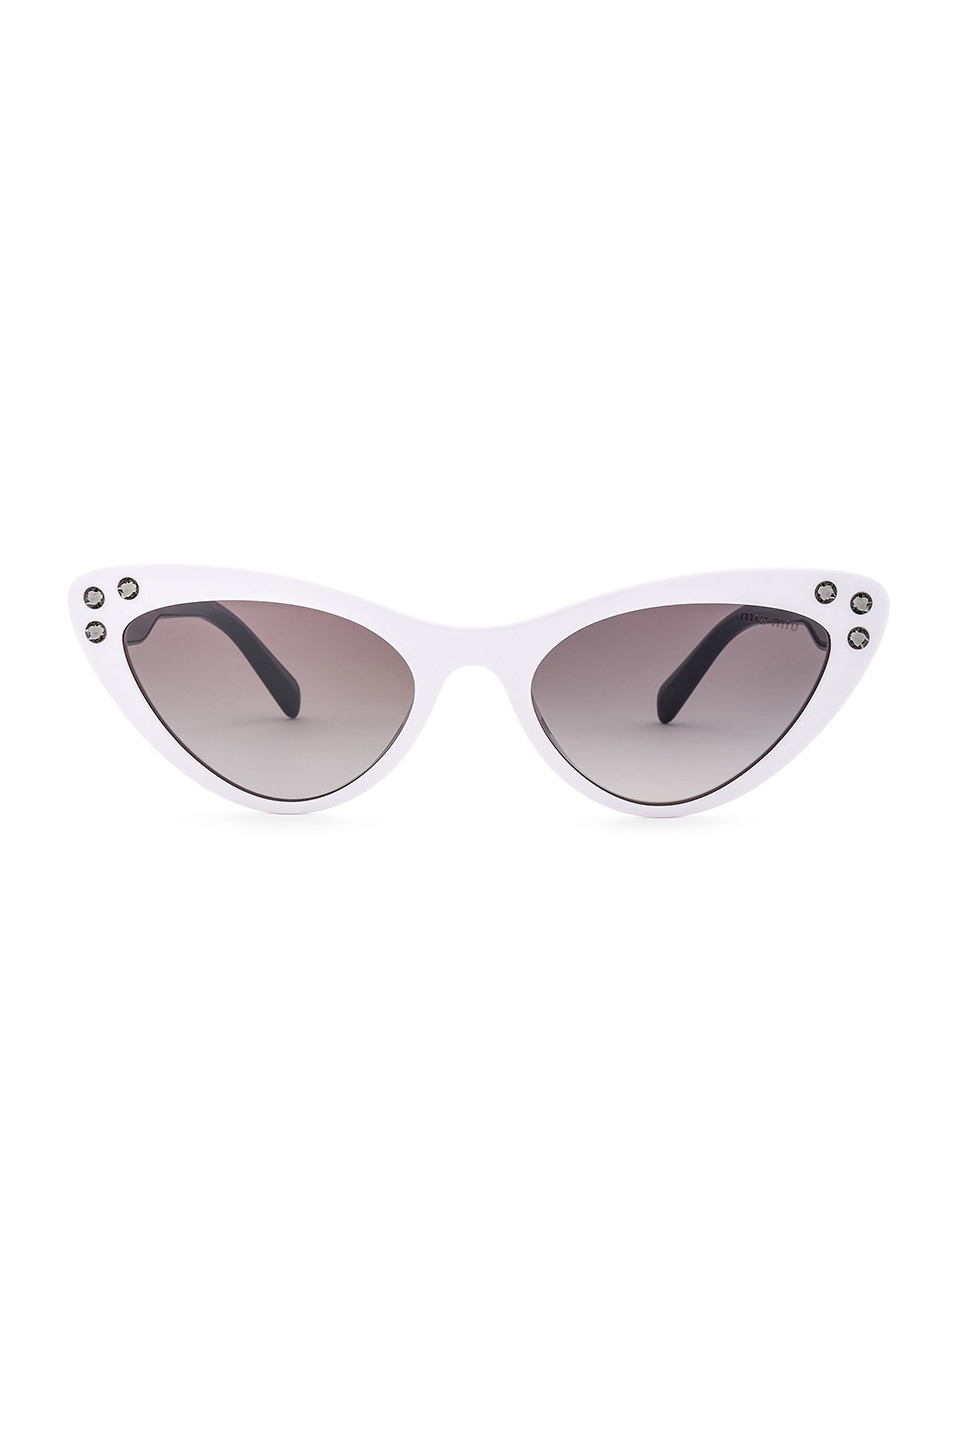 Miu Miu Logomania in White & Gradient Grey Mirror